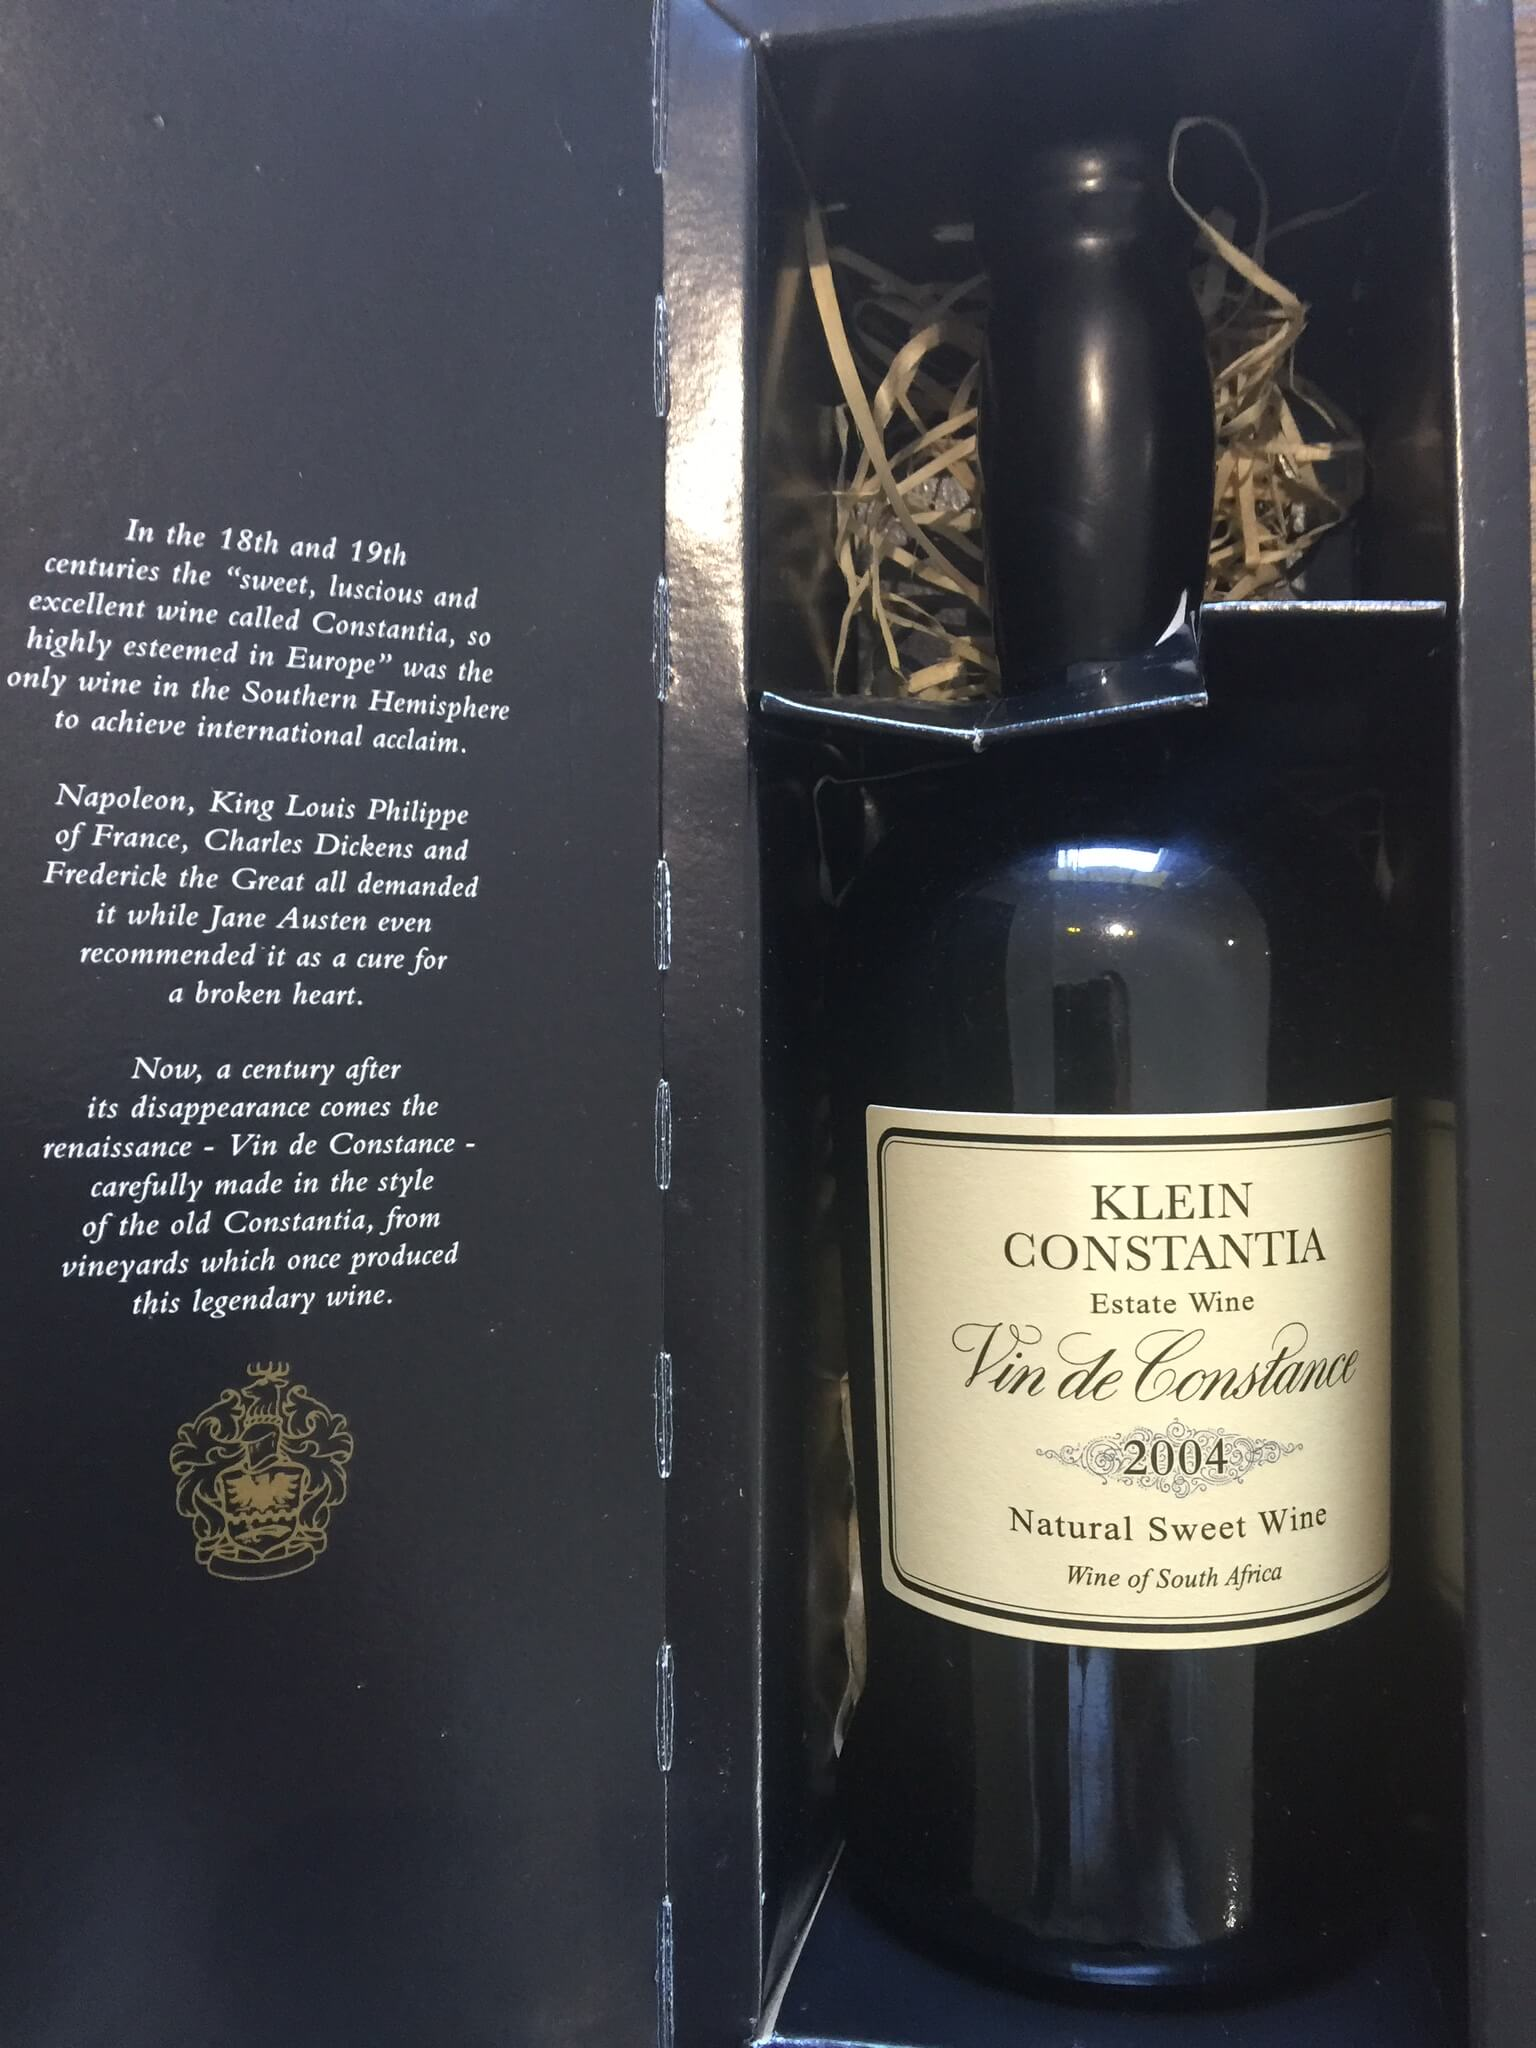 a bottle of Vin de Constance in its packaging